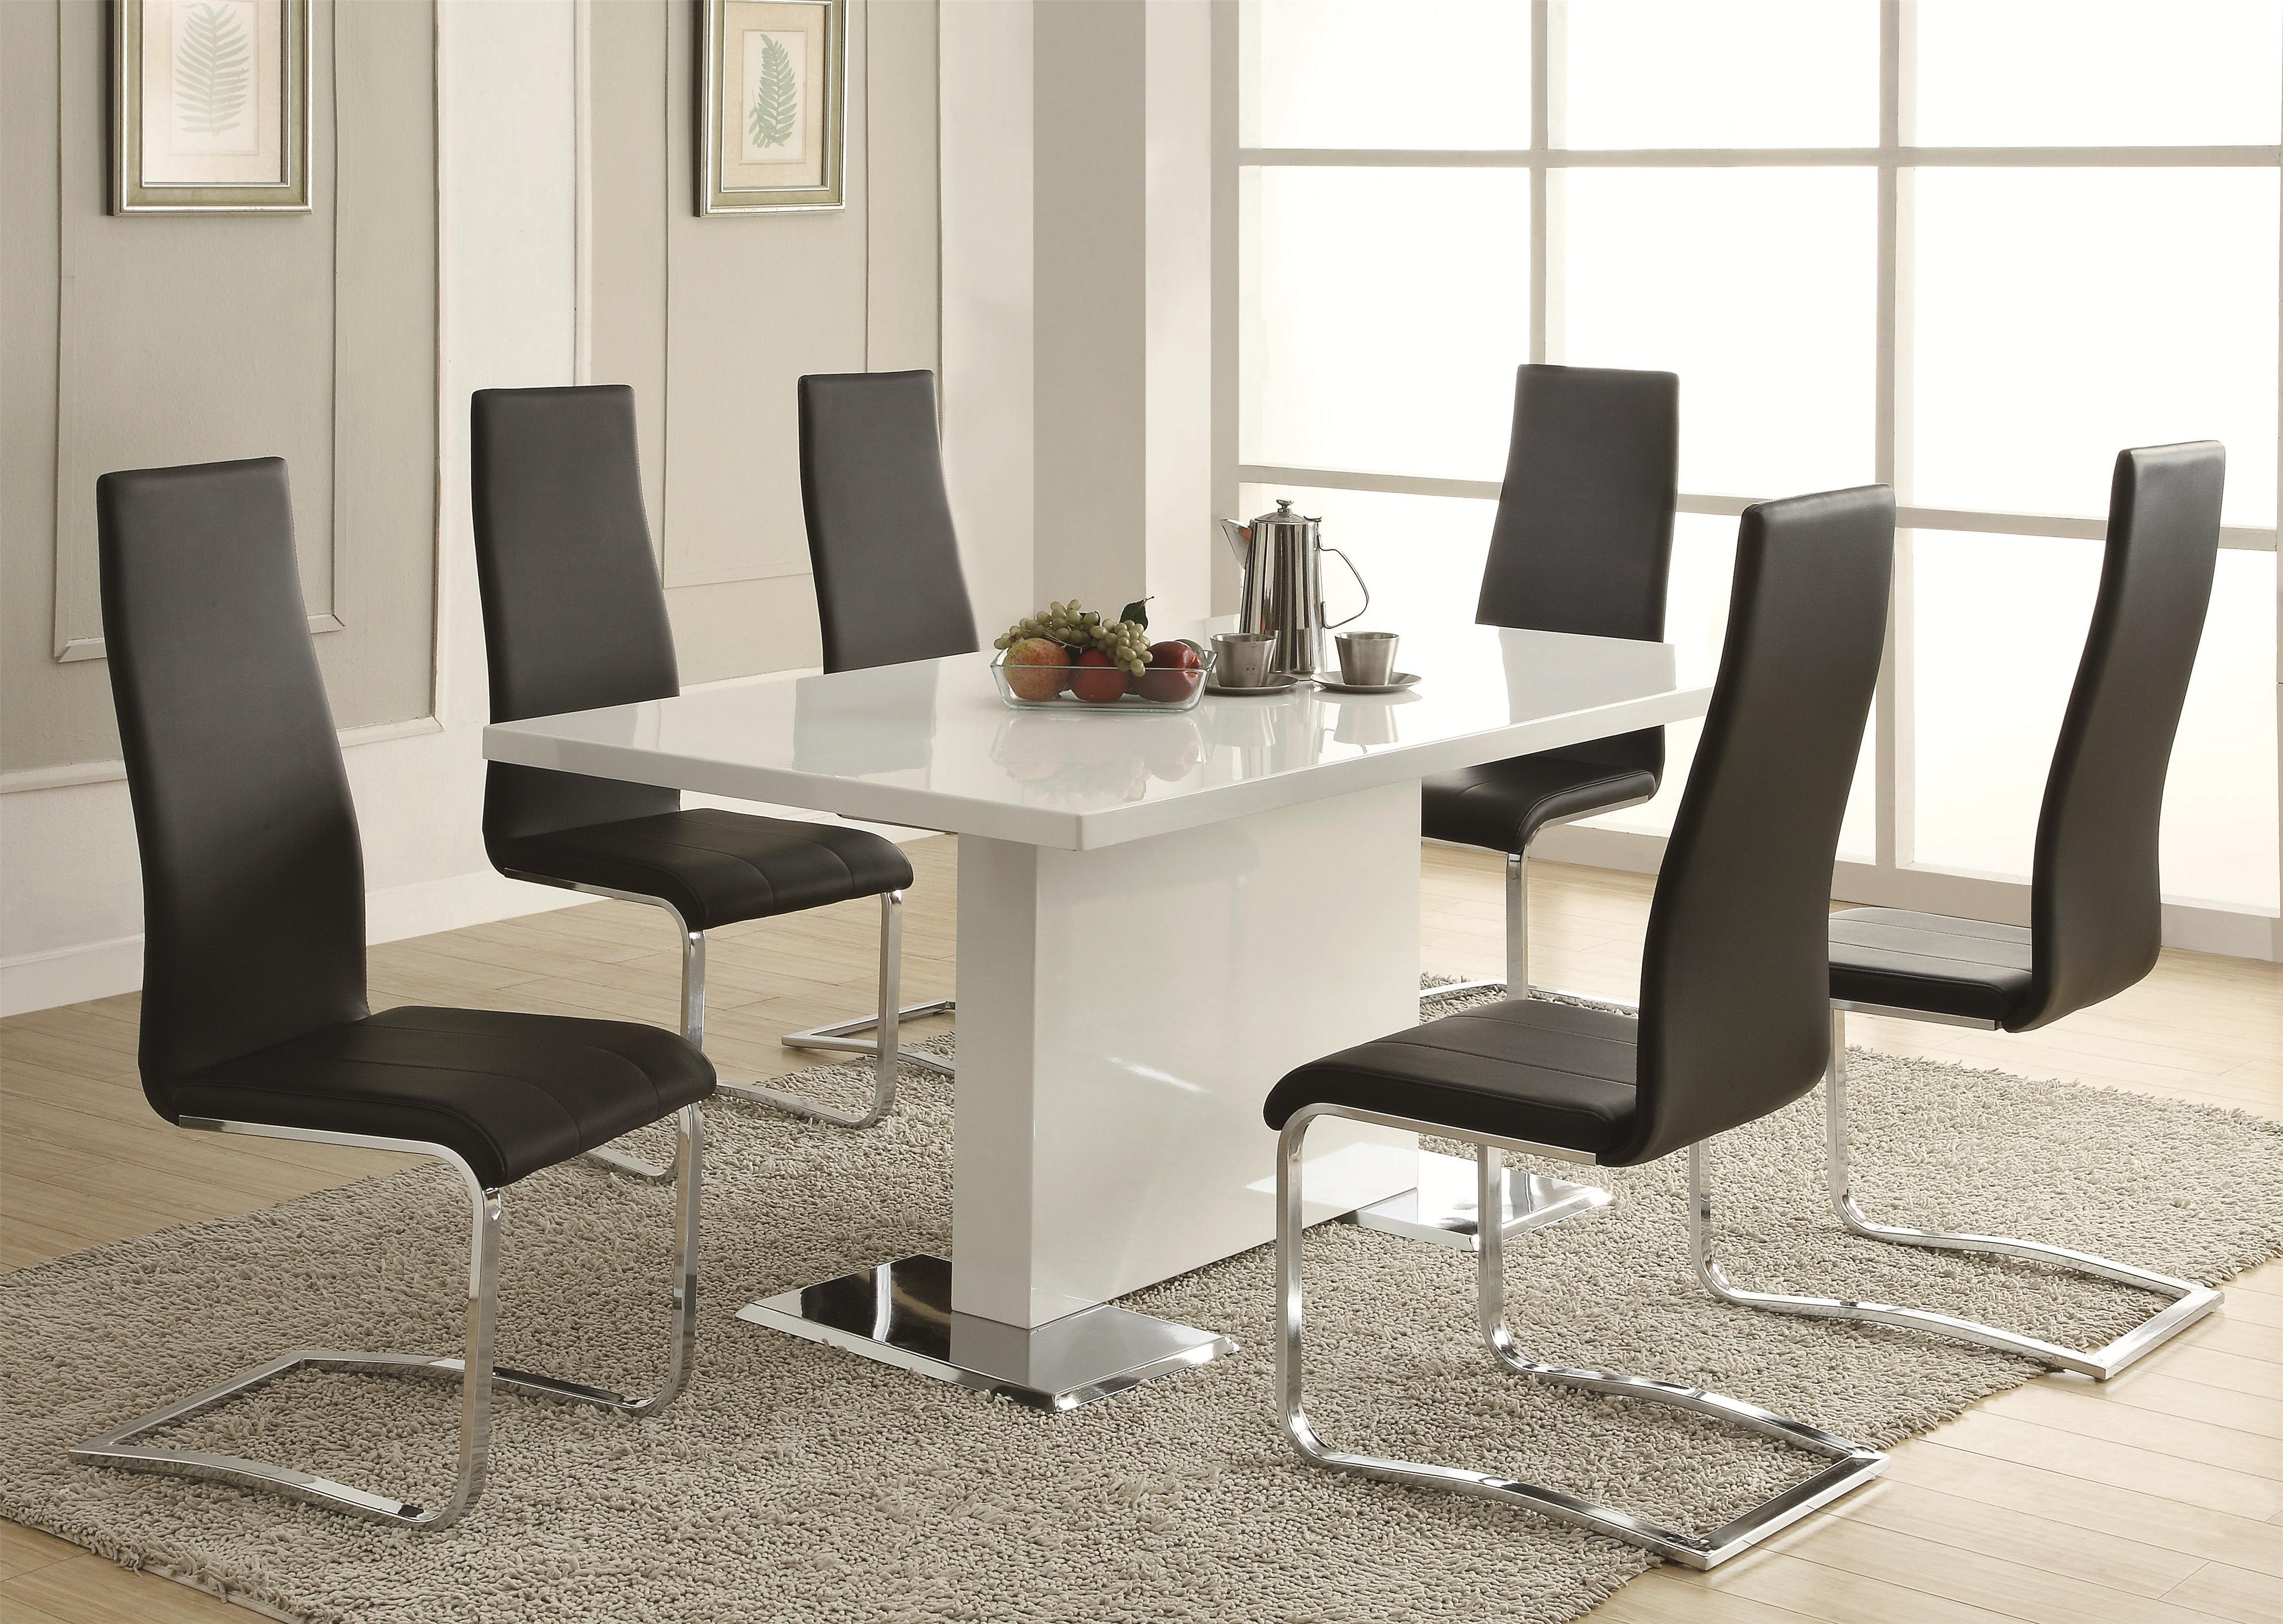 modern dining tables have a cheerful dining experience with the contemporary dining tables LJEDBAA